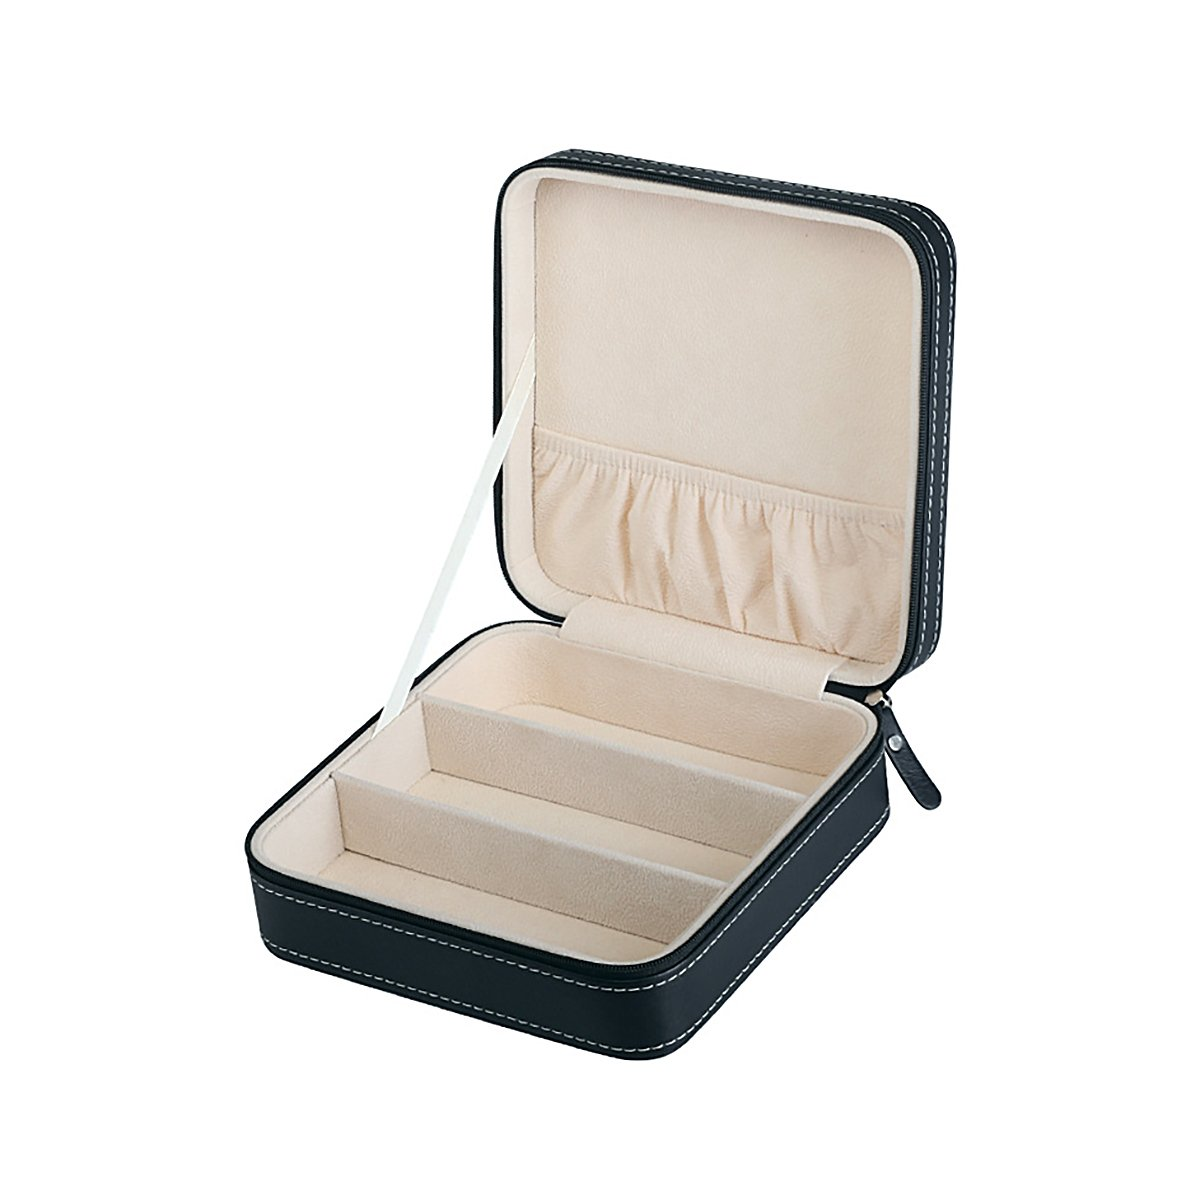 HooAMI Black Leather Small Travel Jewelry Box Organizer Display Storage Case for Rings Earrings Necklace TY BETY129569